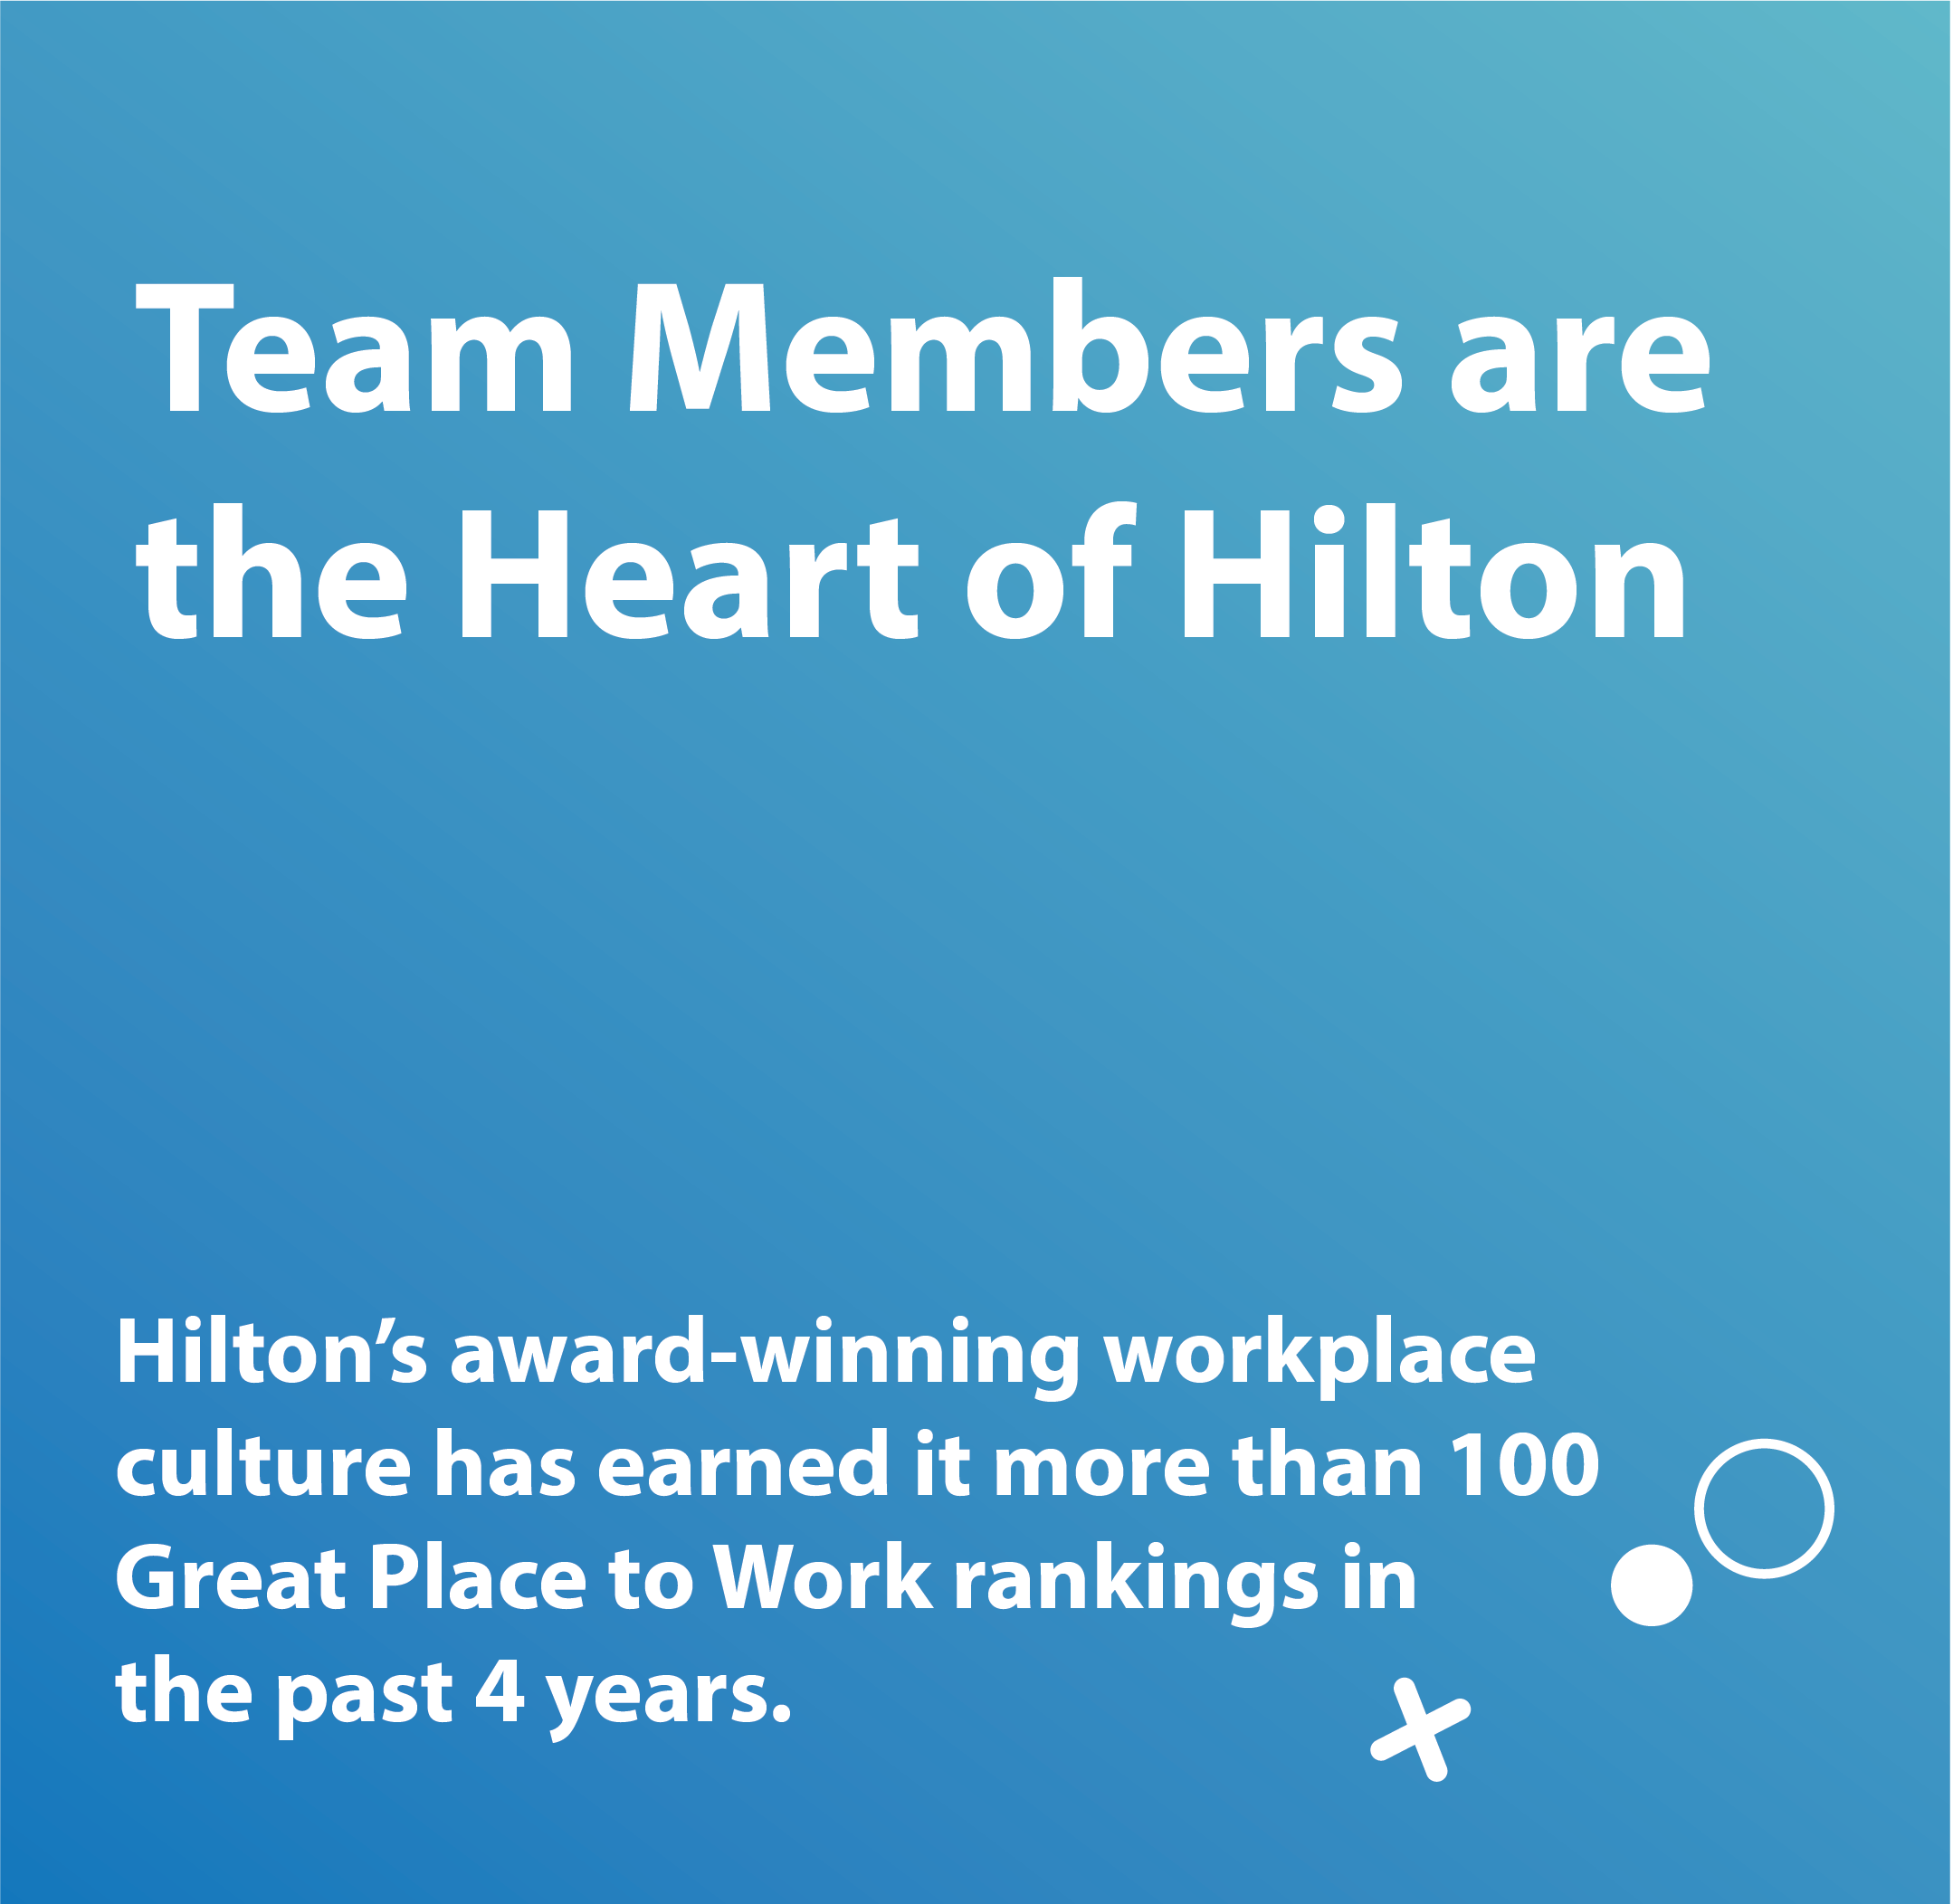 Team members are the heart of Hilton